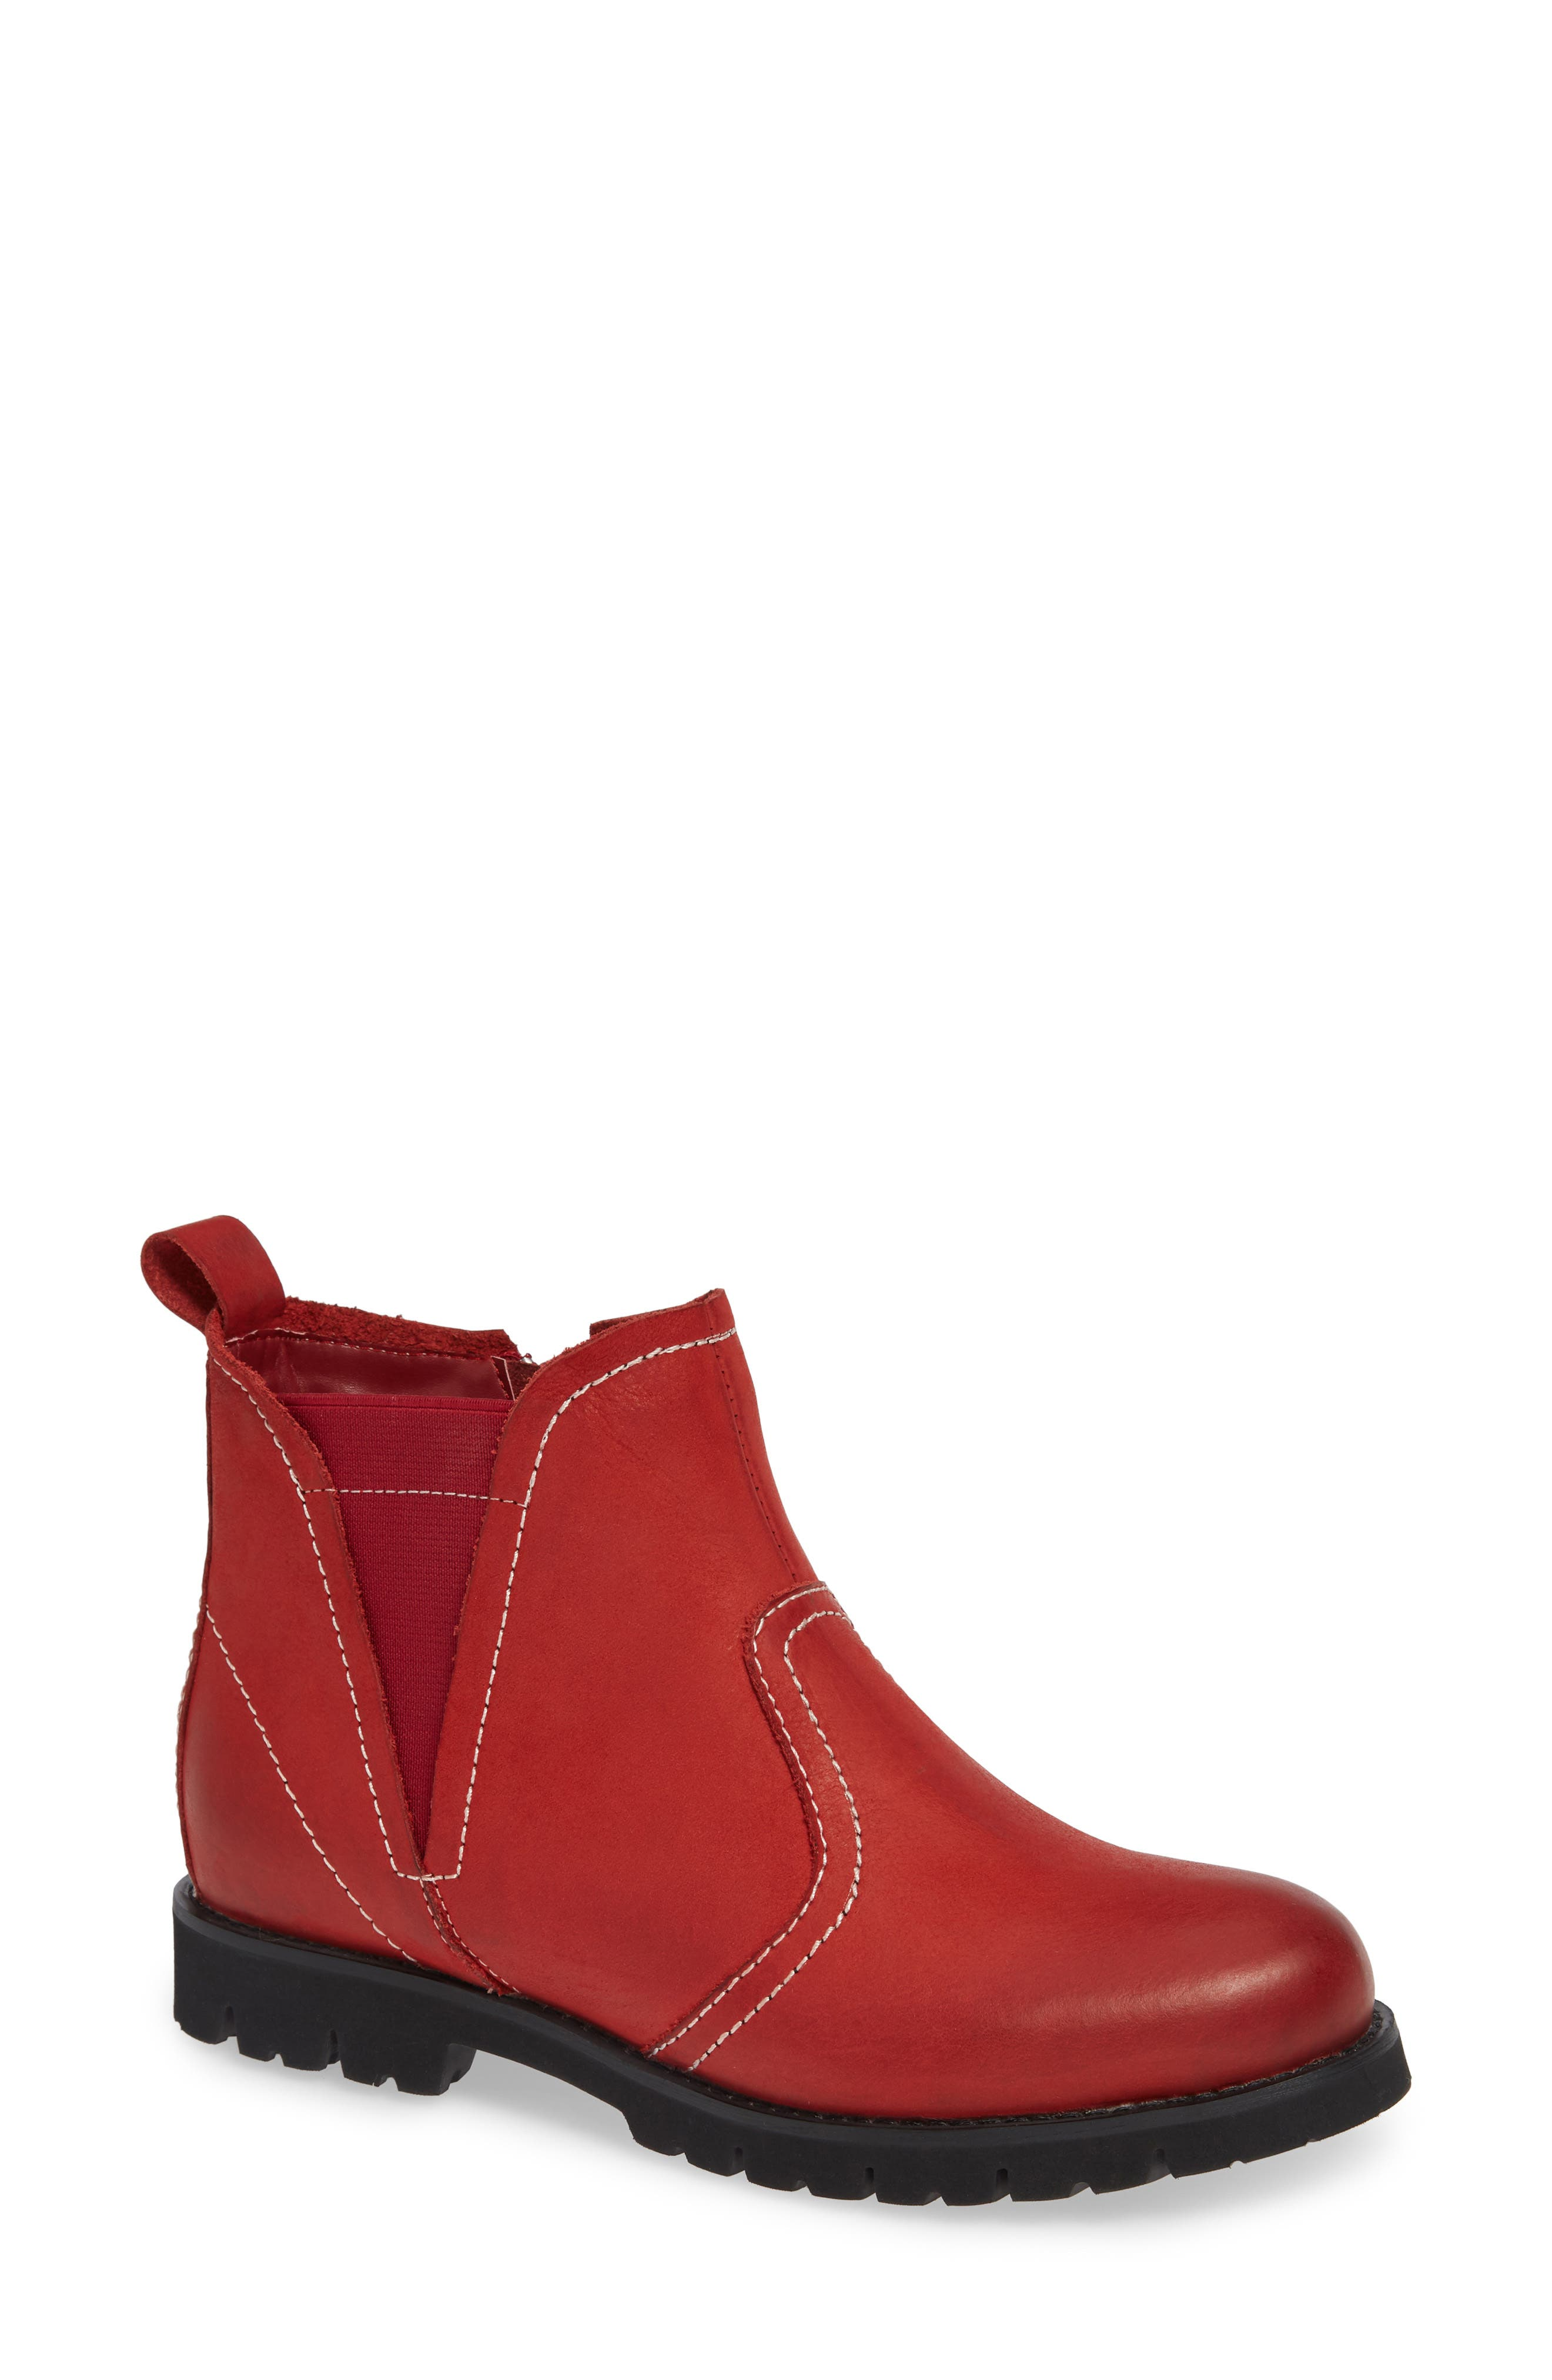 David Tate Reserve Lugged Bootie- Red